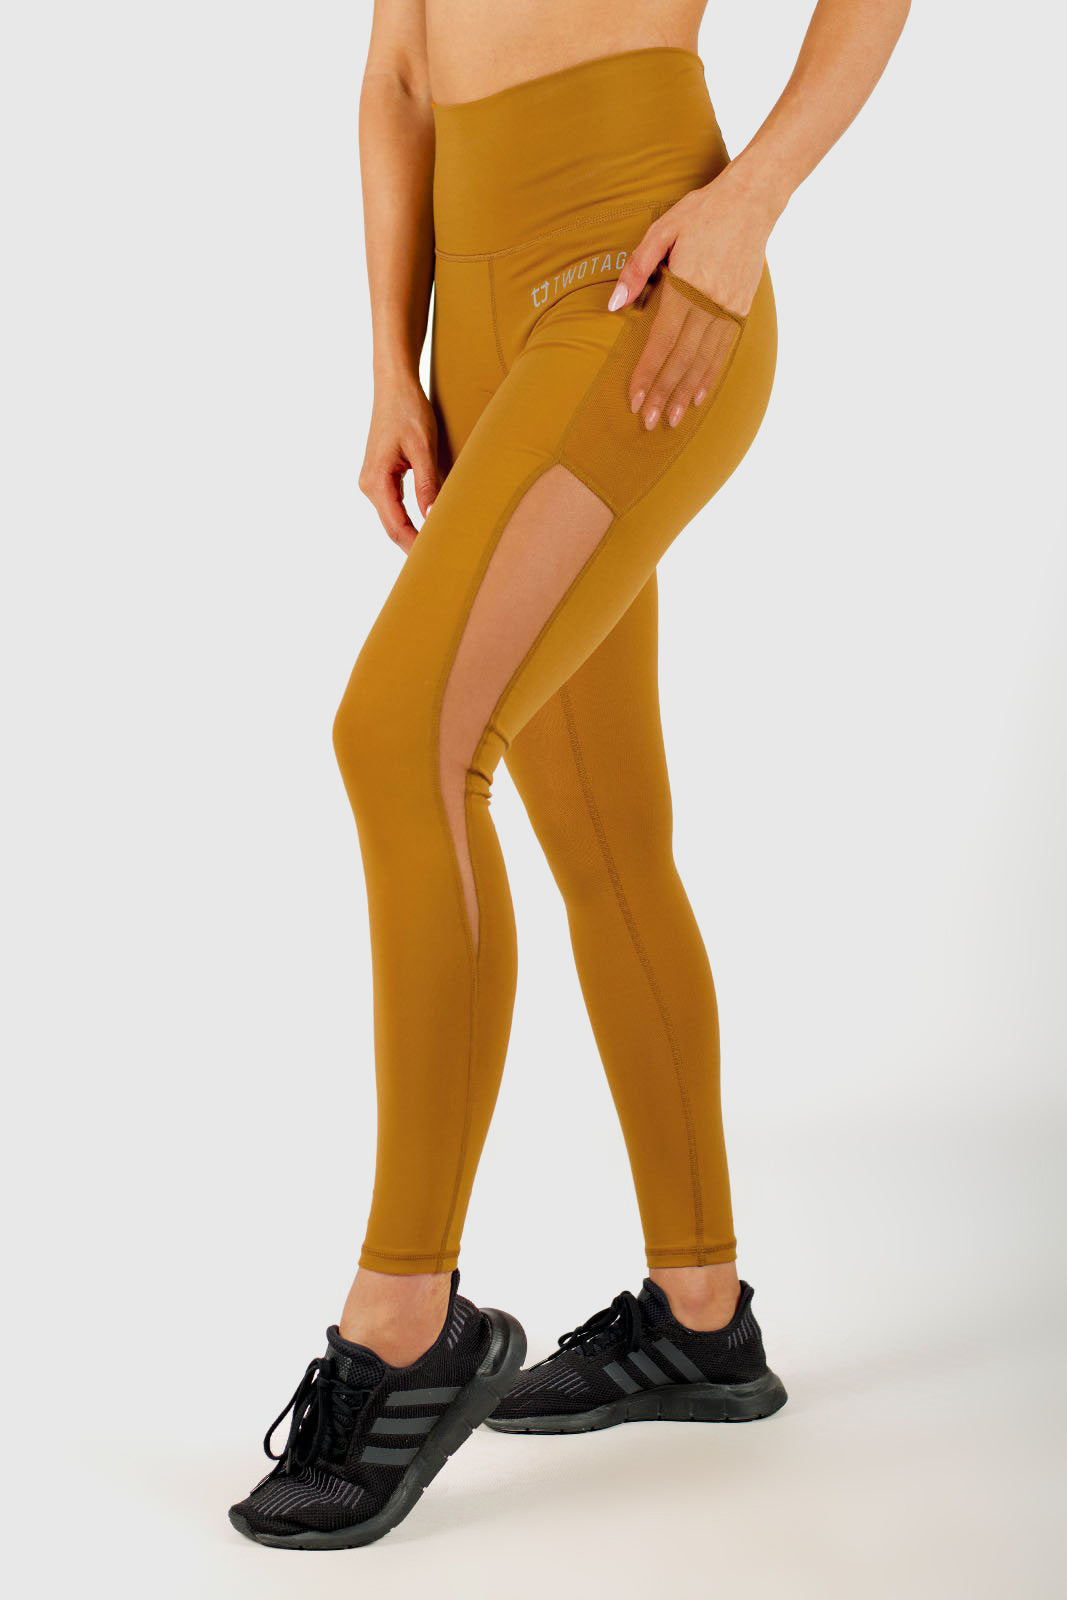 Mustard Yellow Leggings Yoga Pants, Solid Color Yoga Tights for Women, Workout Clothes